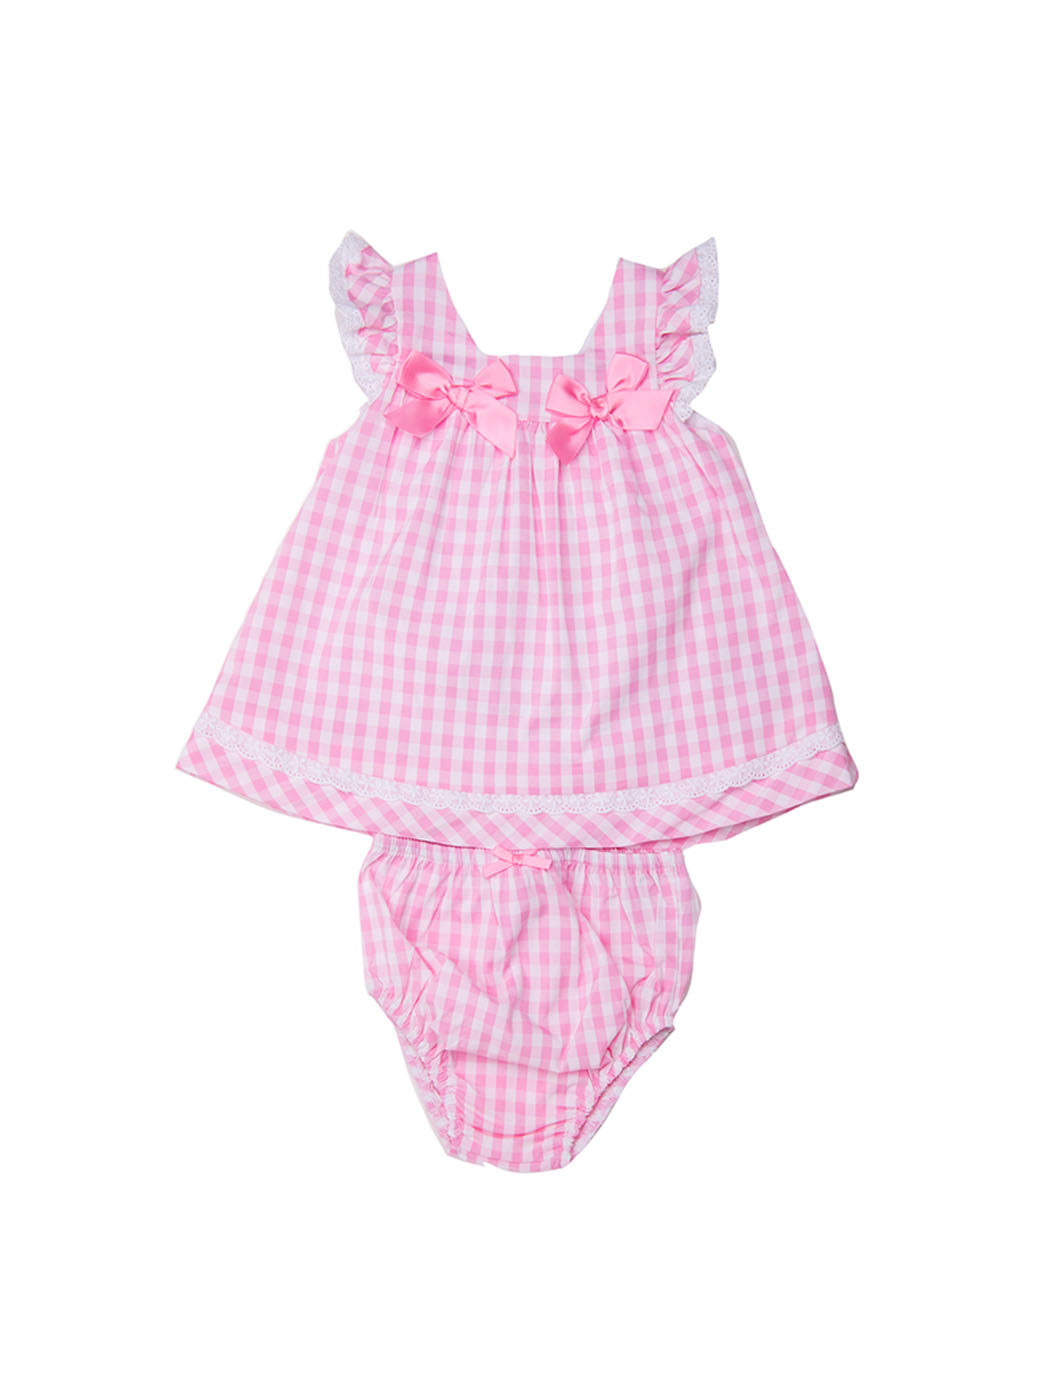 Baby Outfit 2pcs-11098